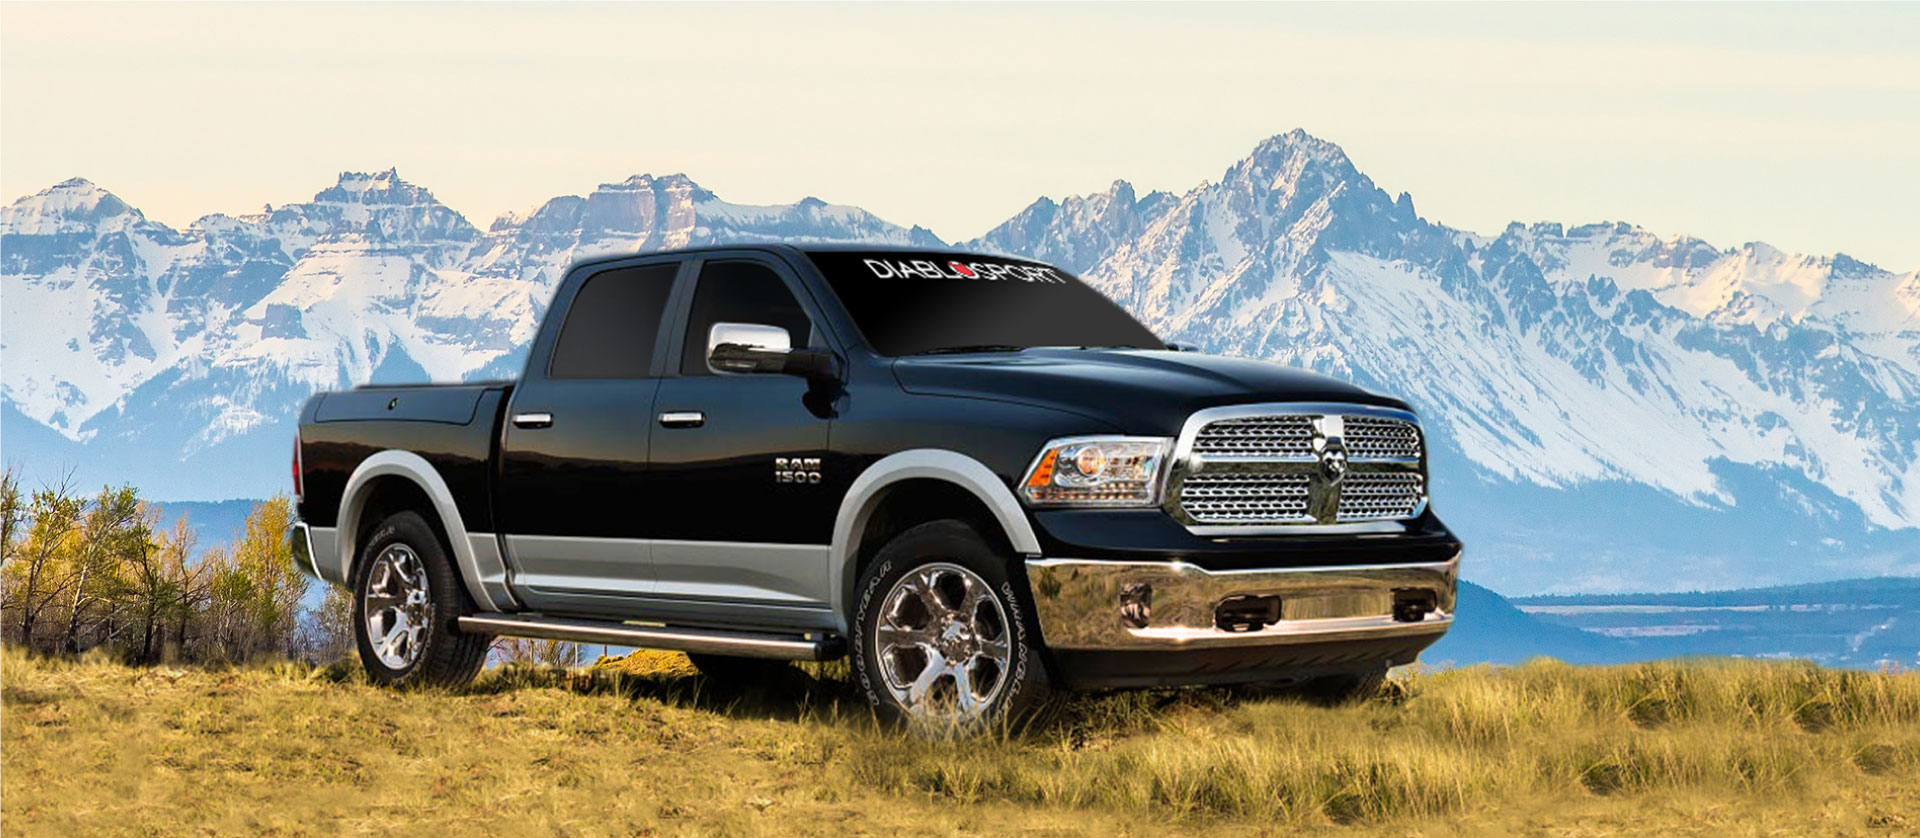 2015 dodge ram 6 4 power programmers autos post. Black Bedroom Furniture Sets. Home Design Ideas